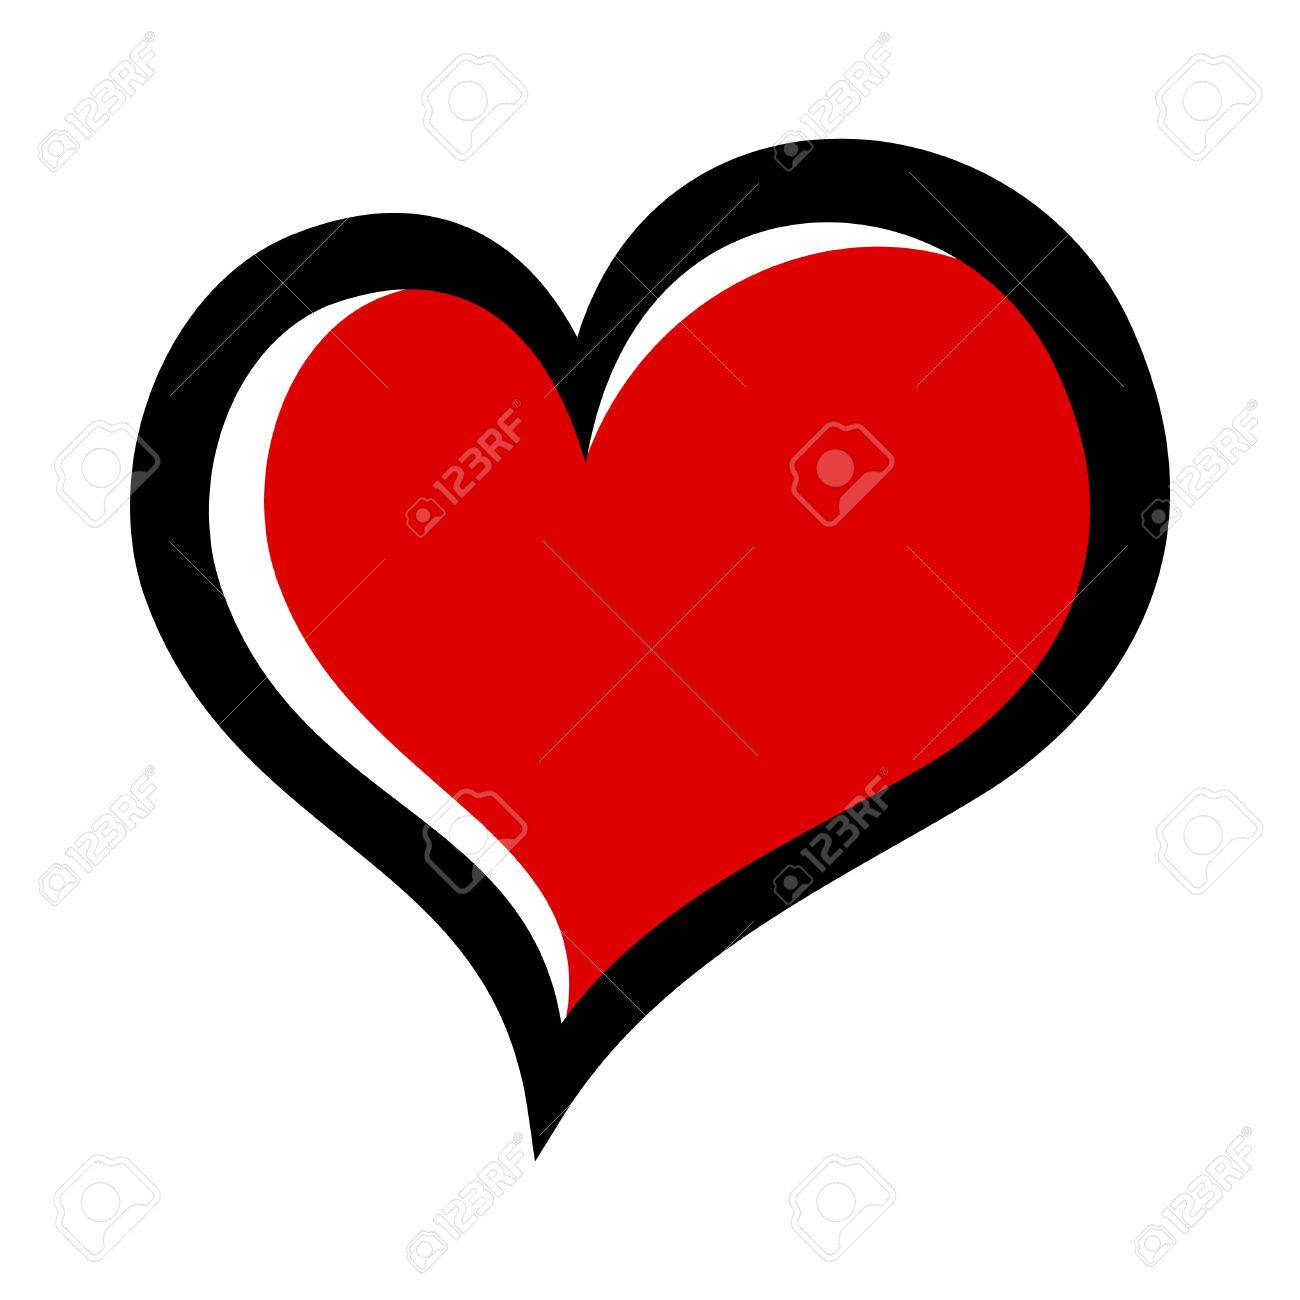 heart vector icon royalty free cliparts vectors and stock rh 123rf com heart vector svg heart vector image